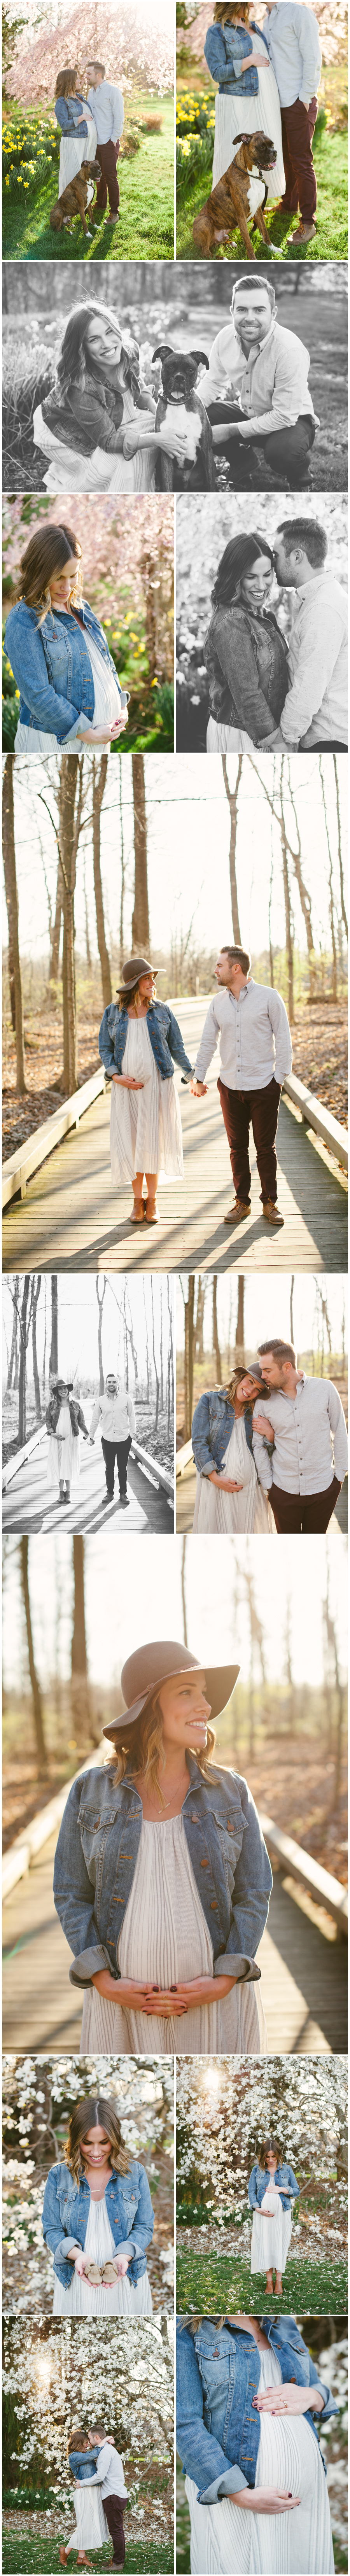 Blog Collage-Lynzee+Austin-M-2